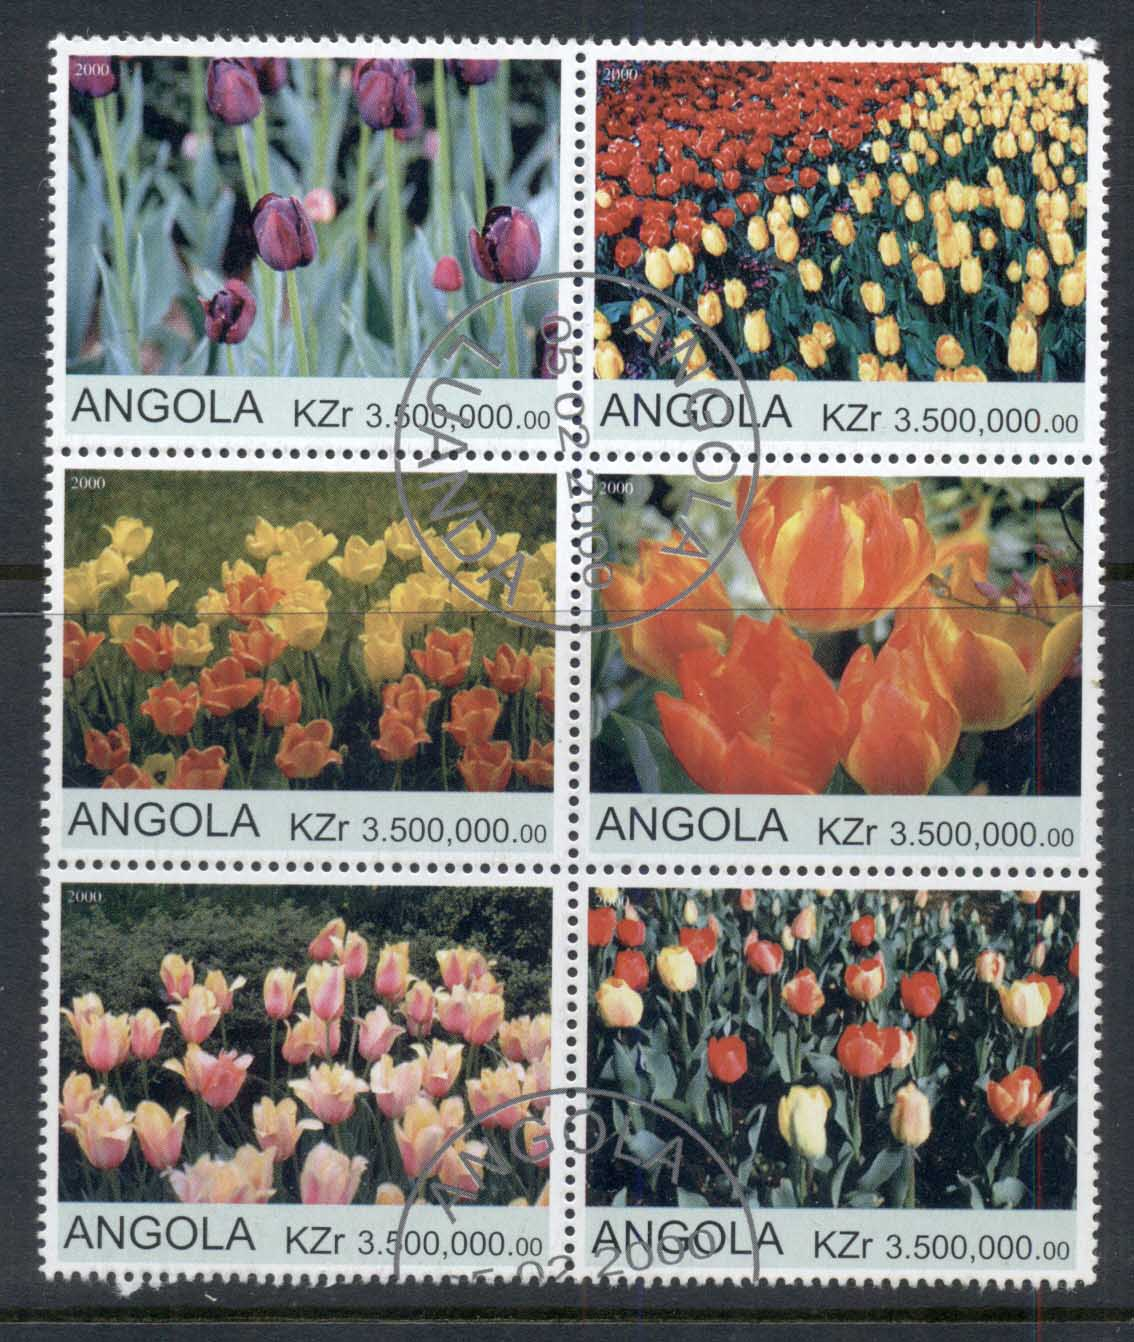 Angola 2000 Flowers, Tulips blk6 (rebel Issue) CTO